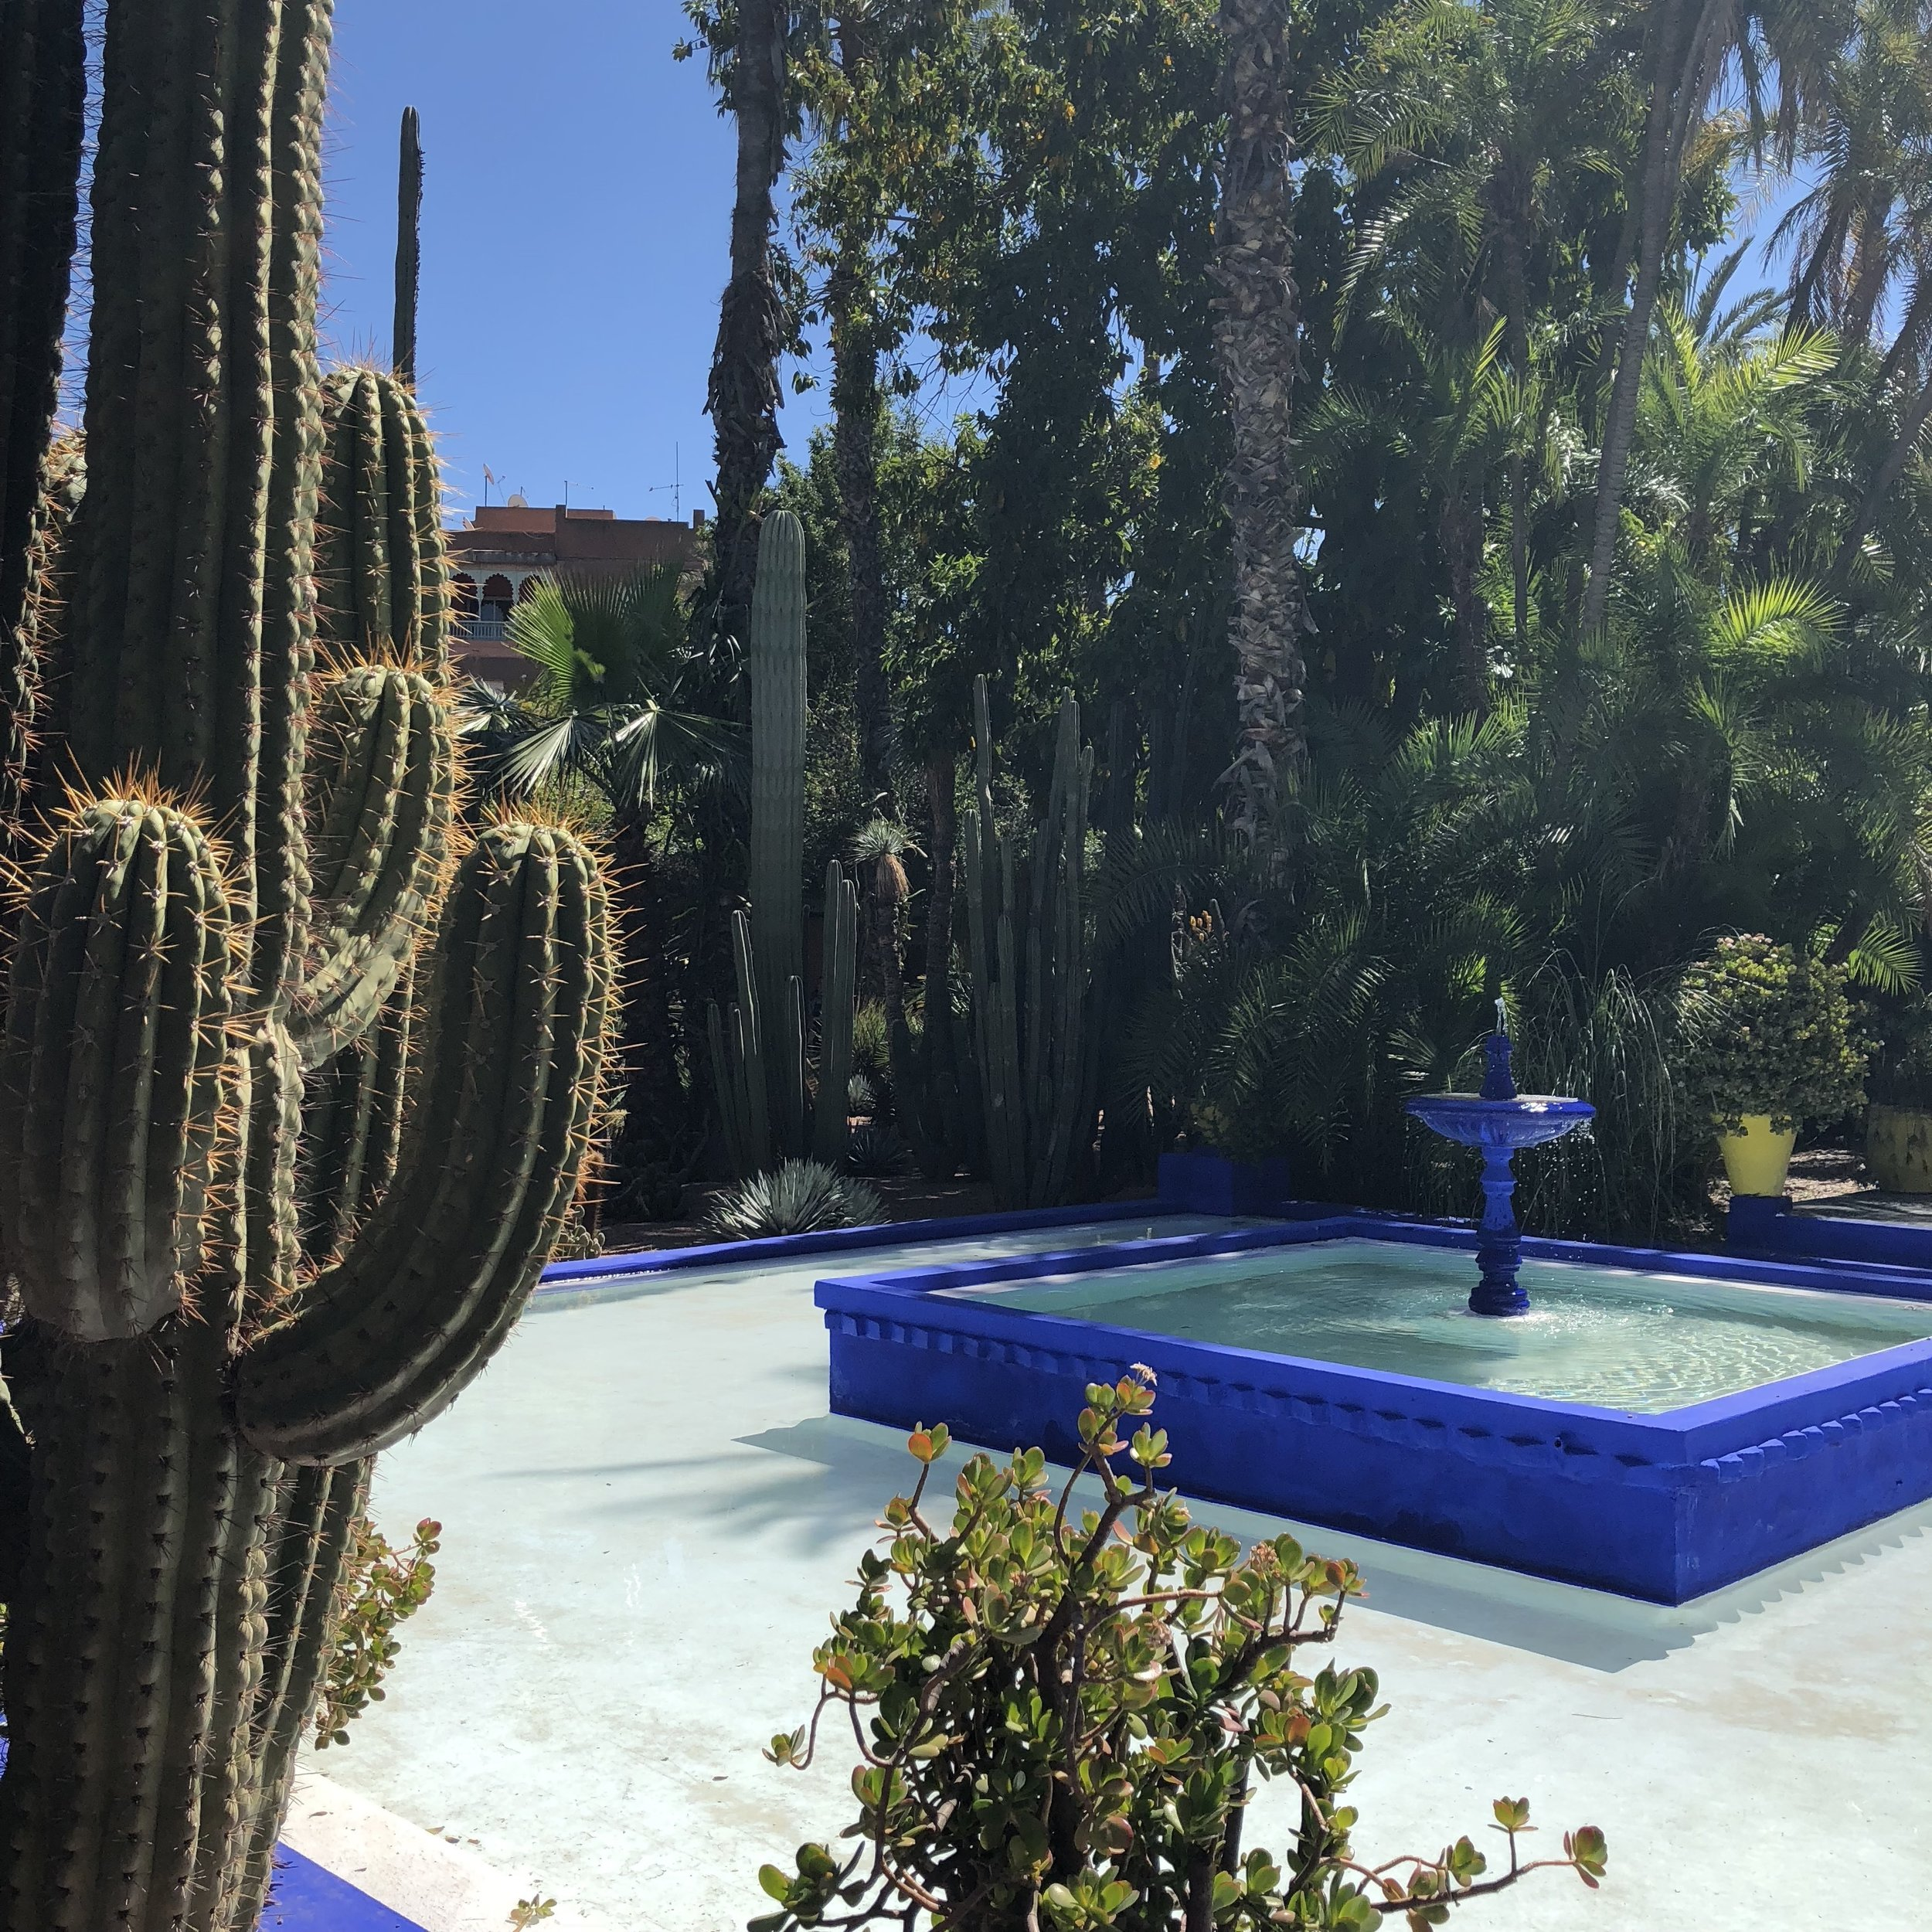 The famous Marjorelle Blue is featured throughout the gardens